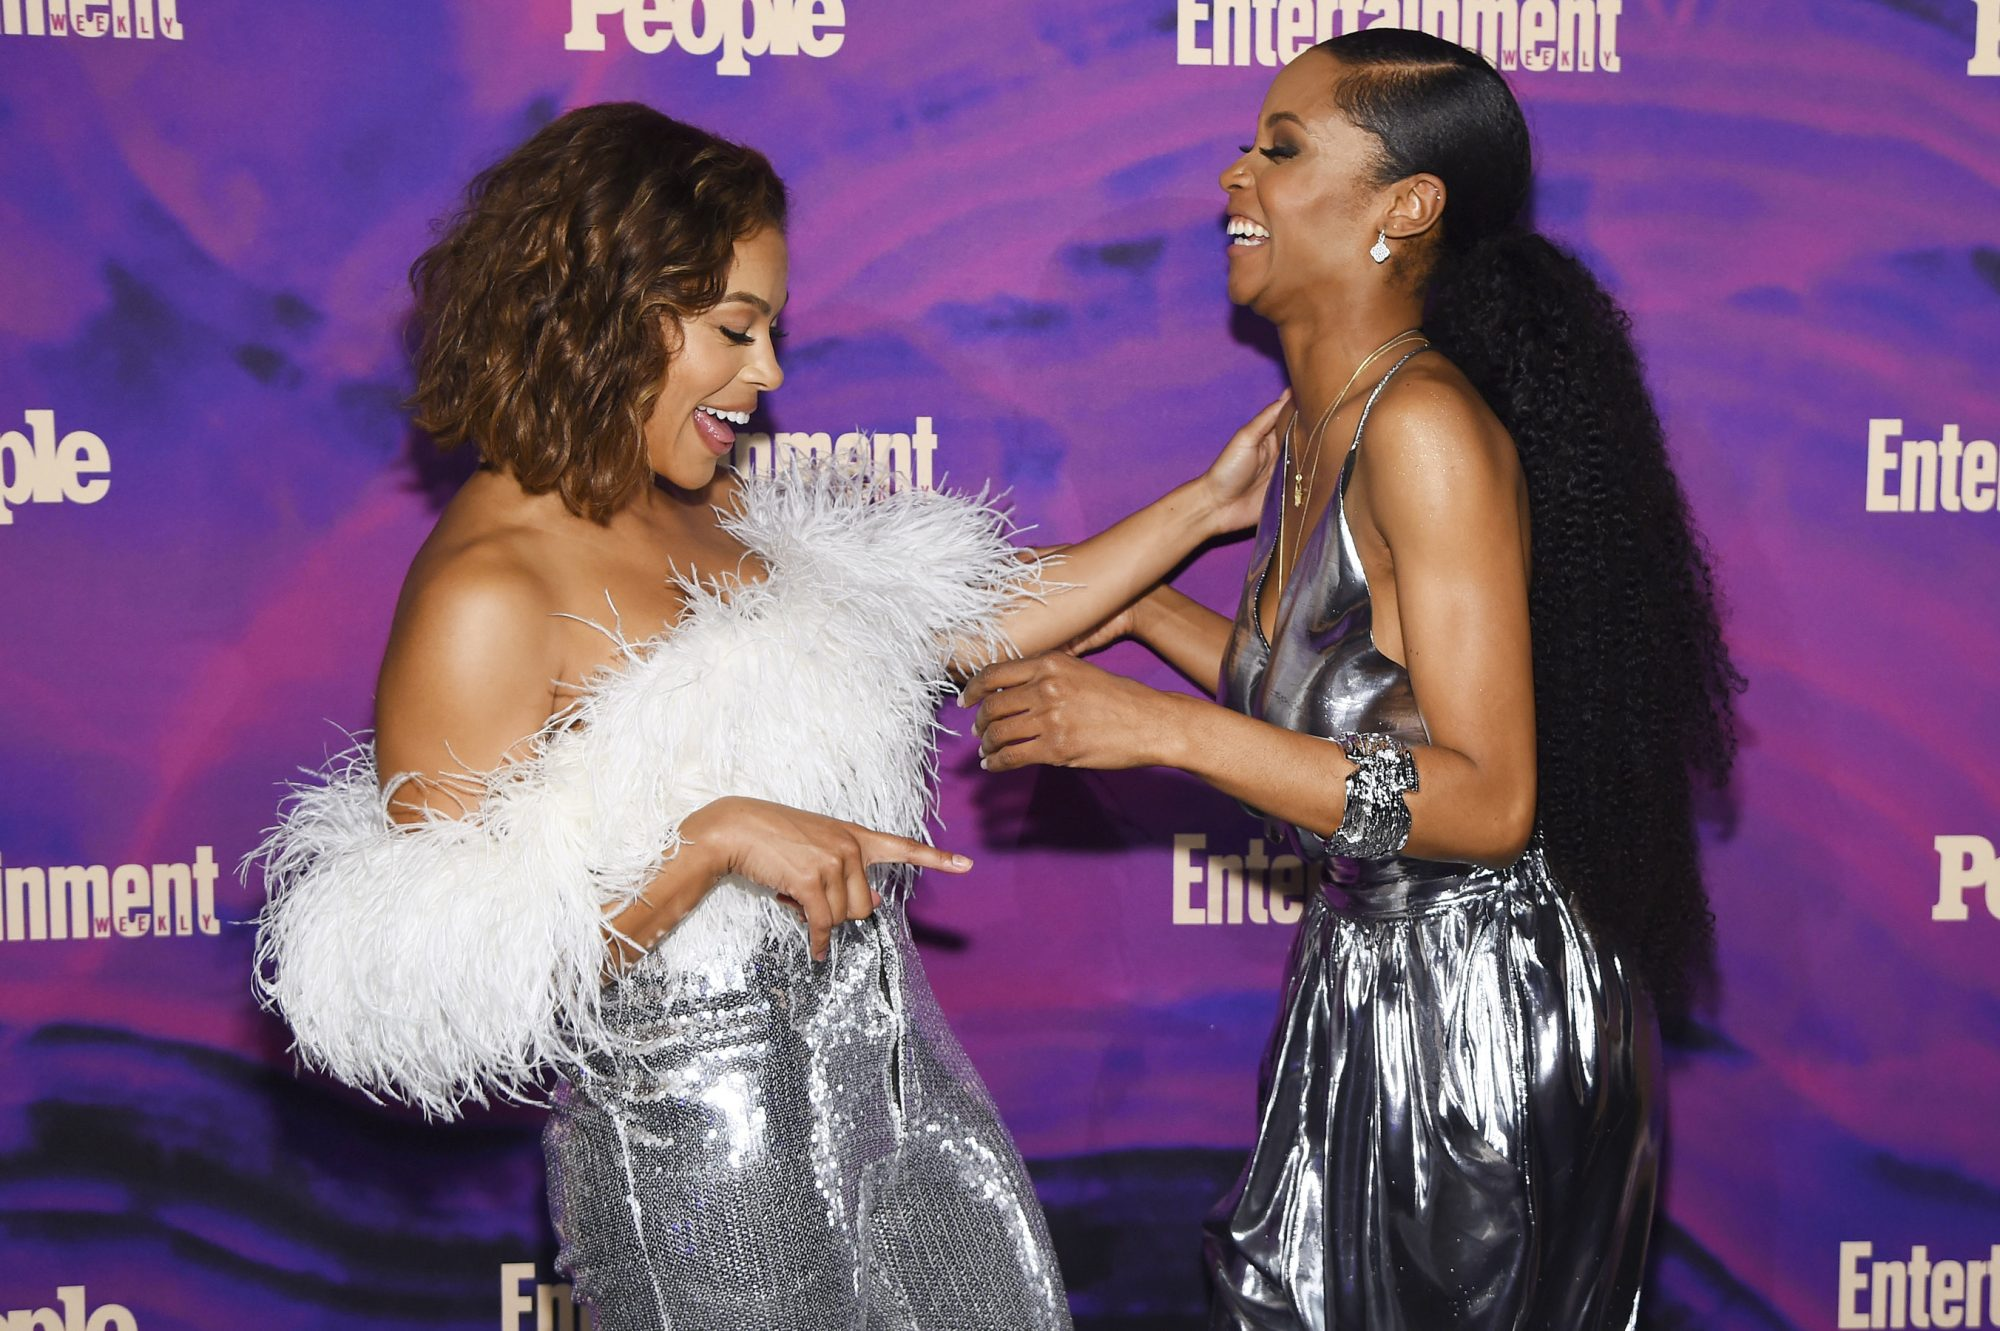 NEW YORK, NEW YORK - MAY 13: Toni Trucks and Yaya DaCosta attend the Entertainment Weekly & PEOPLE New York Upfronts Party on May 13, 2019 in New York City. (Photo by Larry Busacca/Getty Images for Entertainment Weekly & PEOPLE)